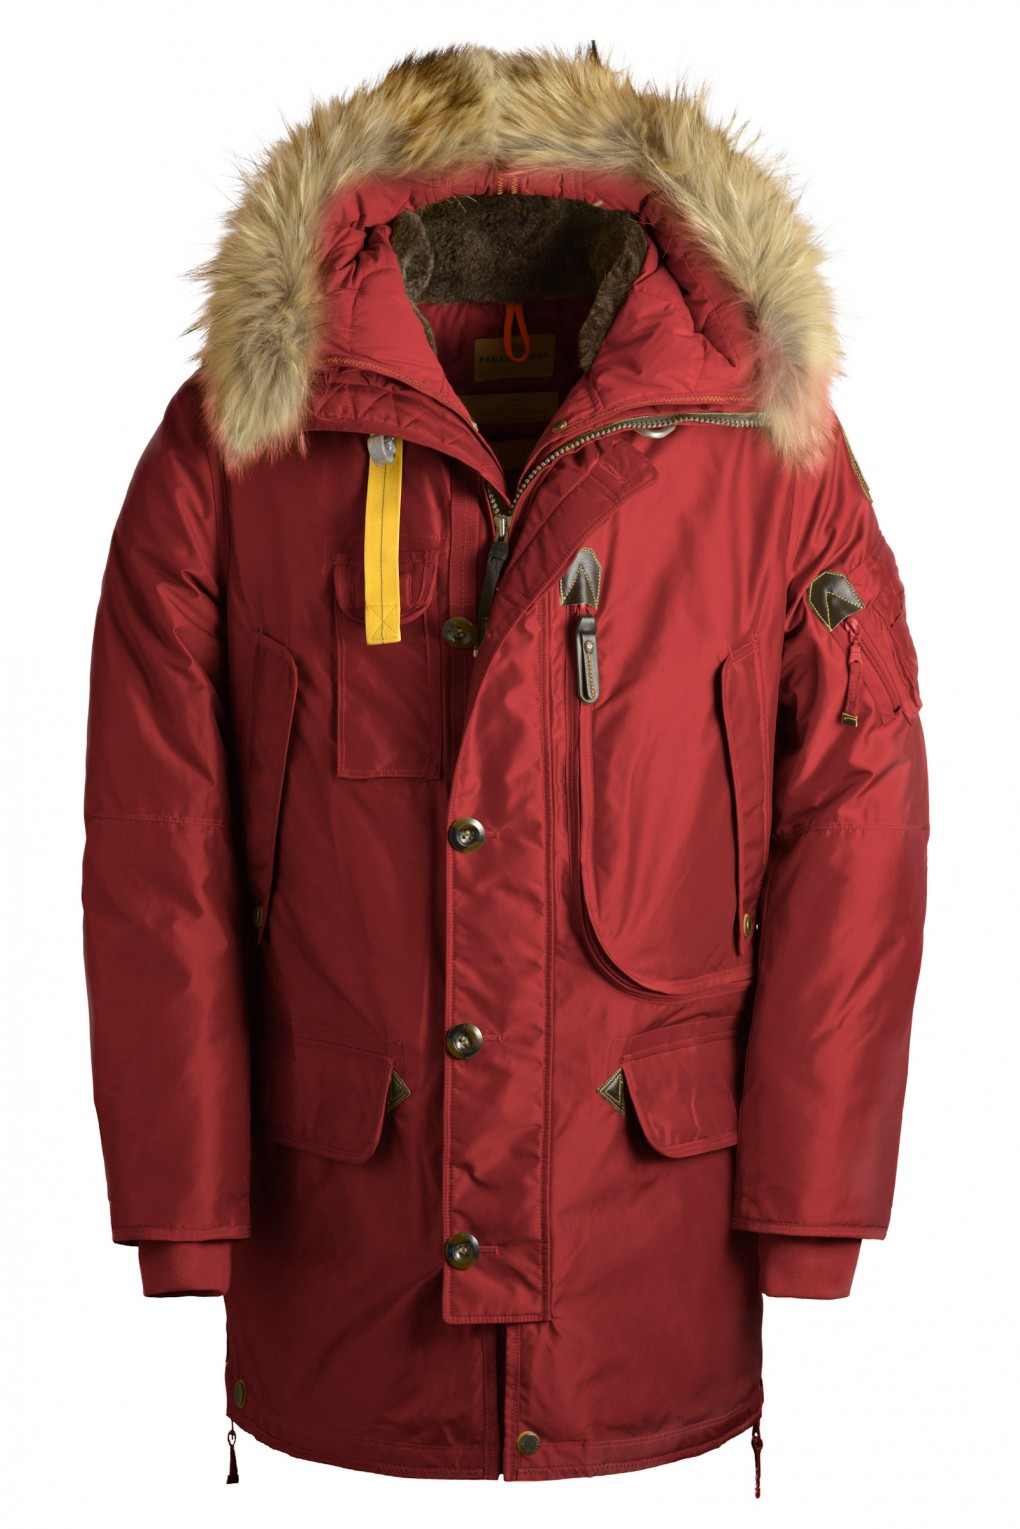 parajumpers KODIAK man outerwear Red